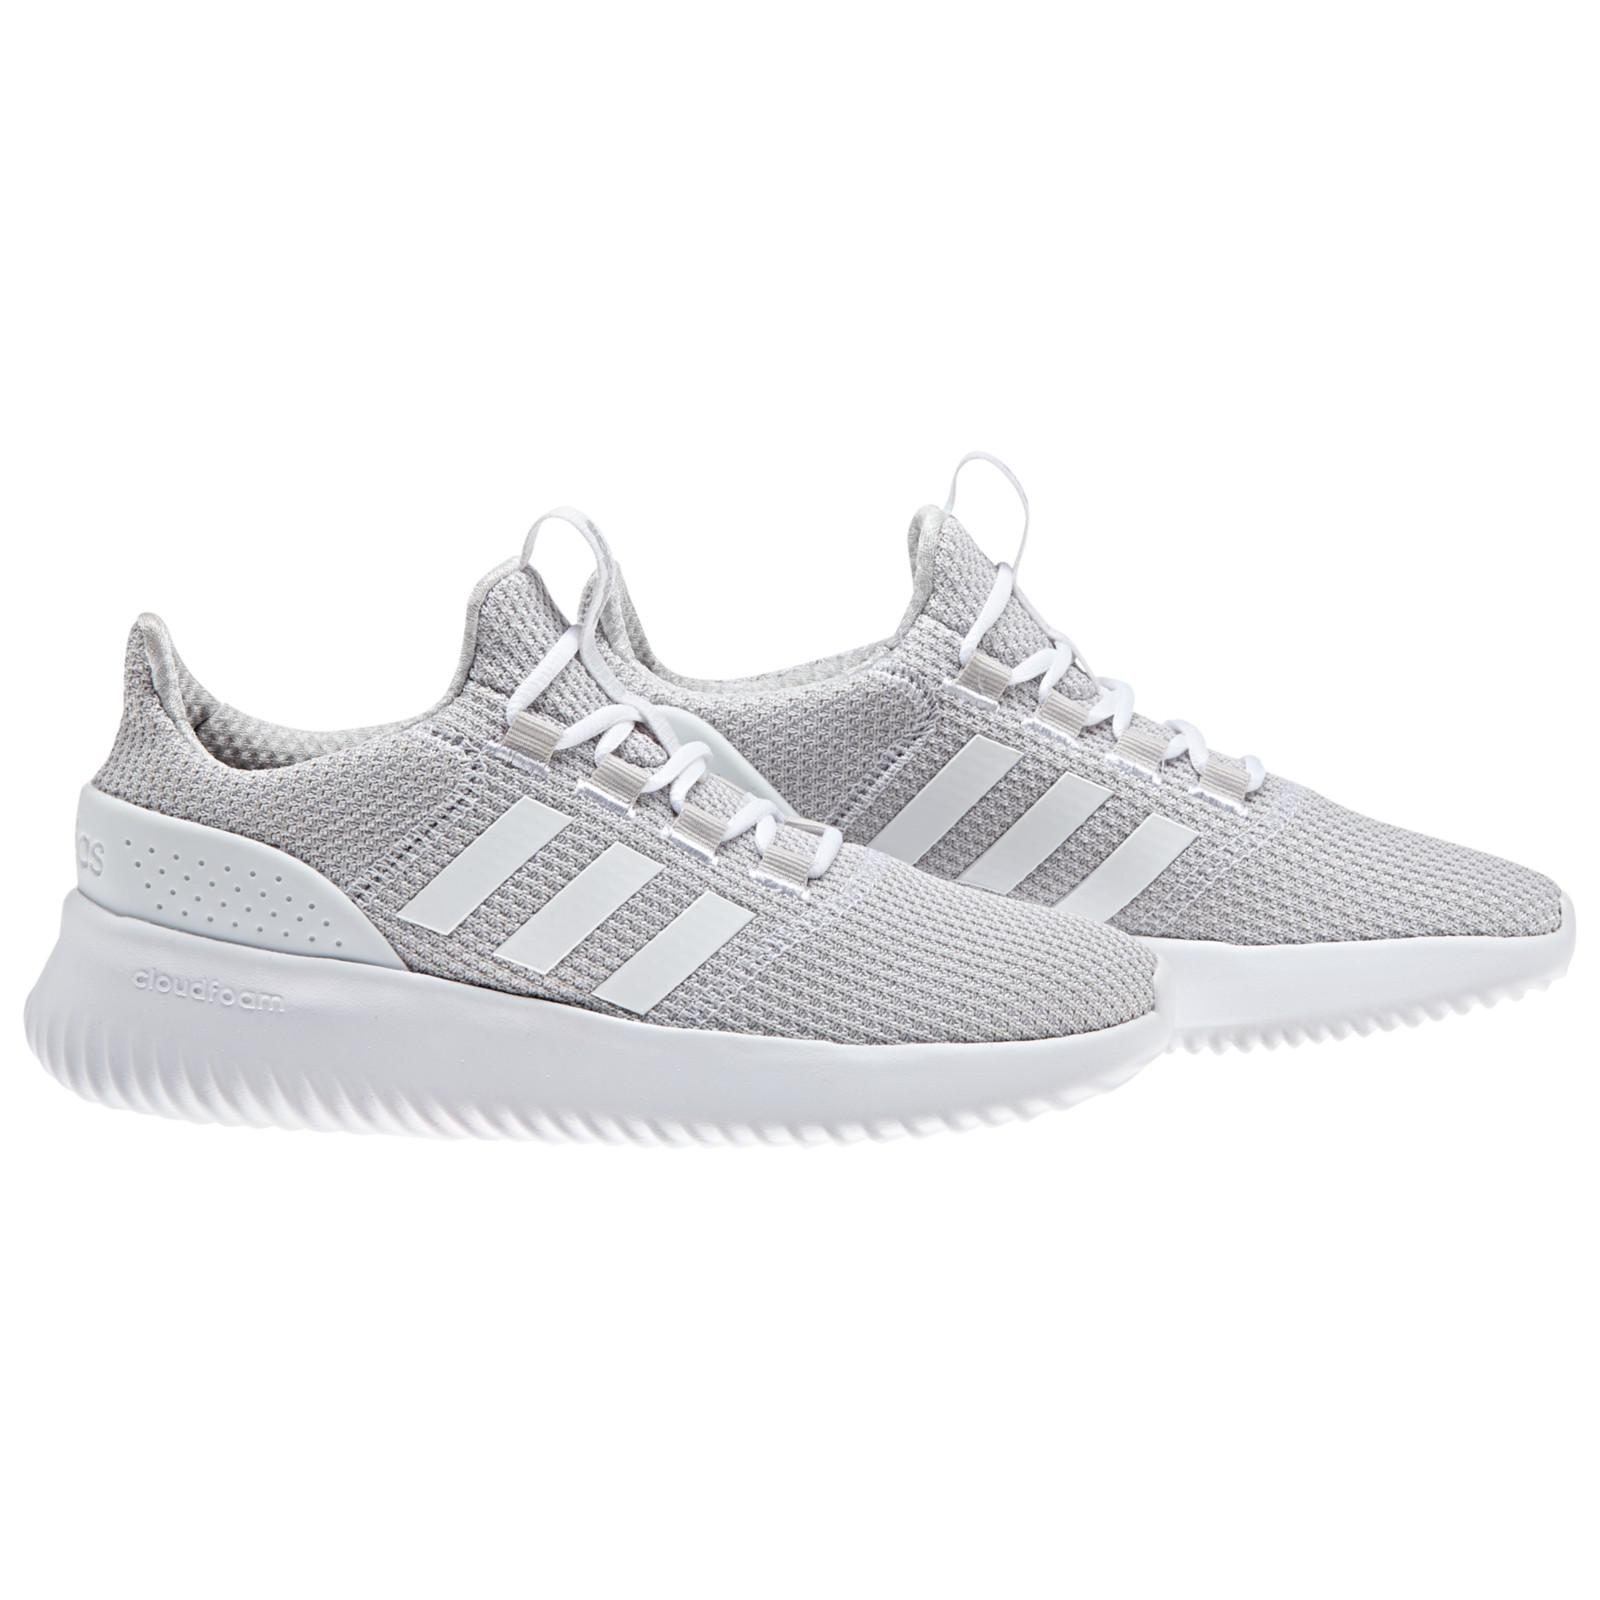 adidas Cloudfoam Ultimate Women s Trainers in Gray - Lyst 064c51f14